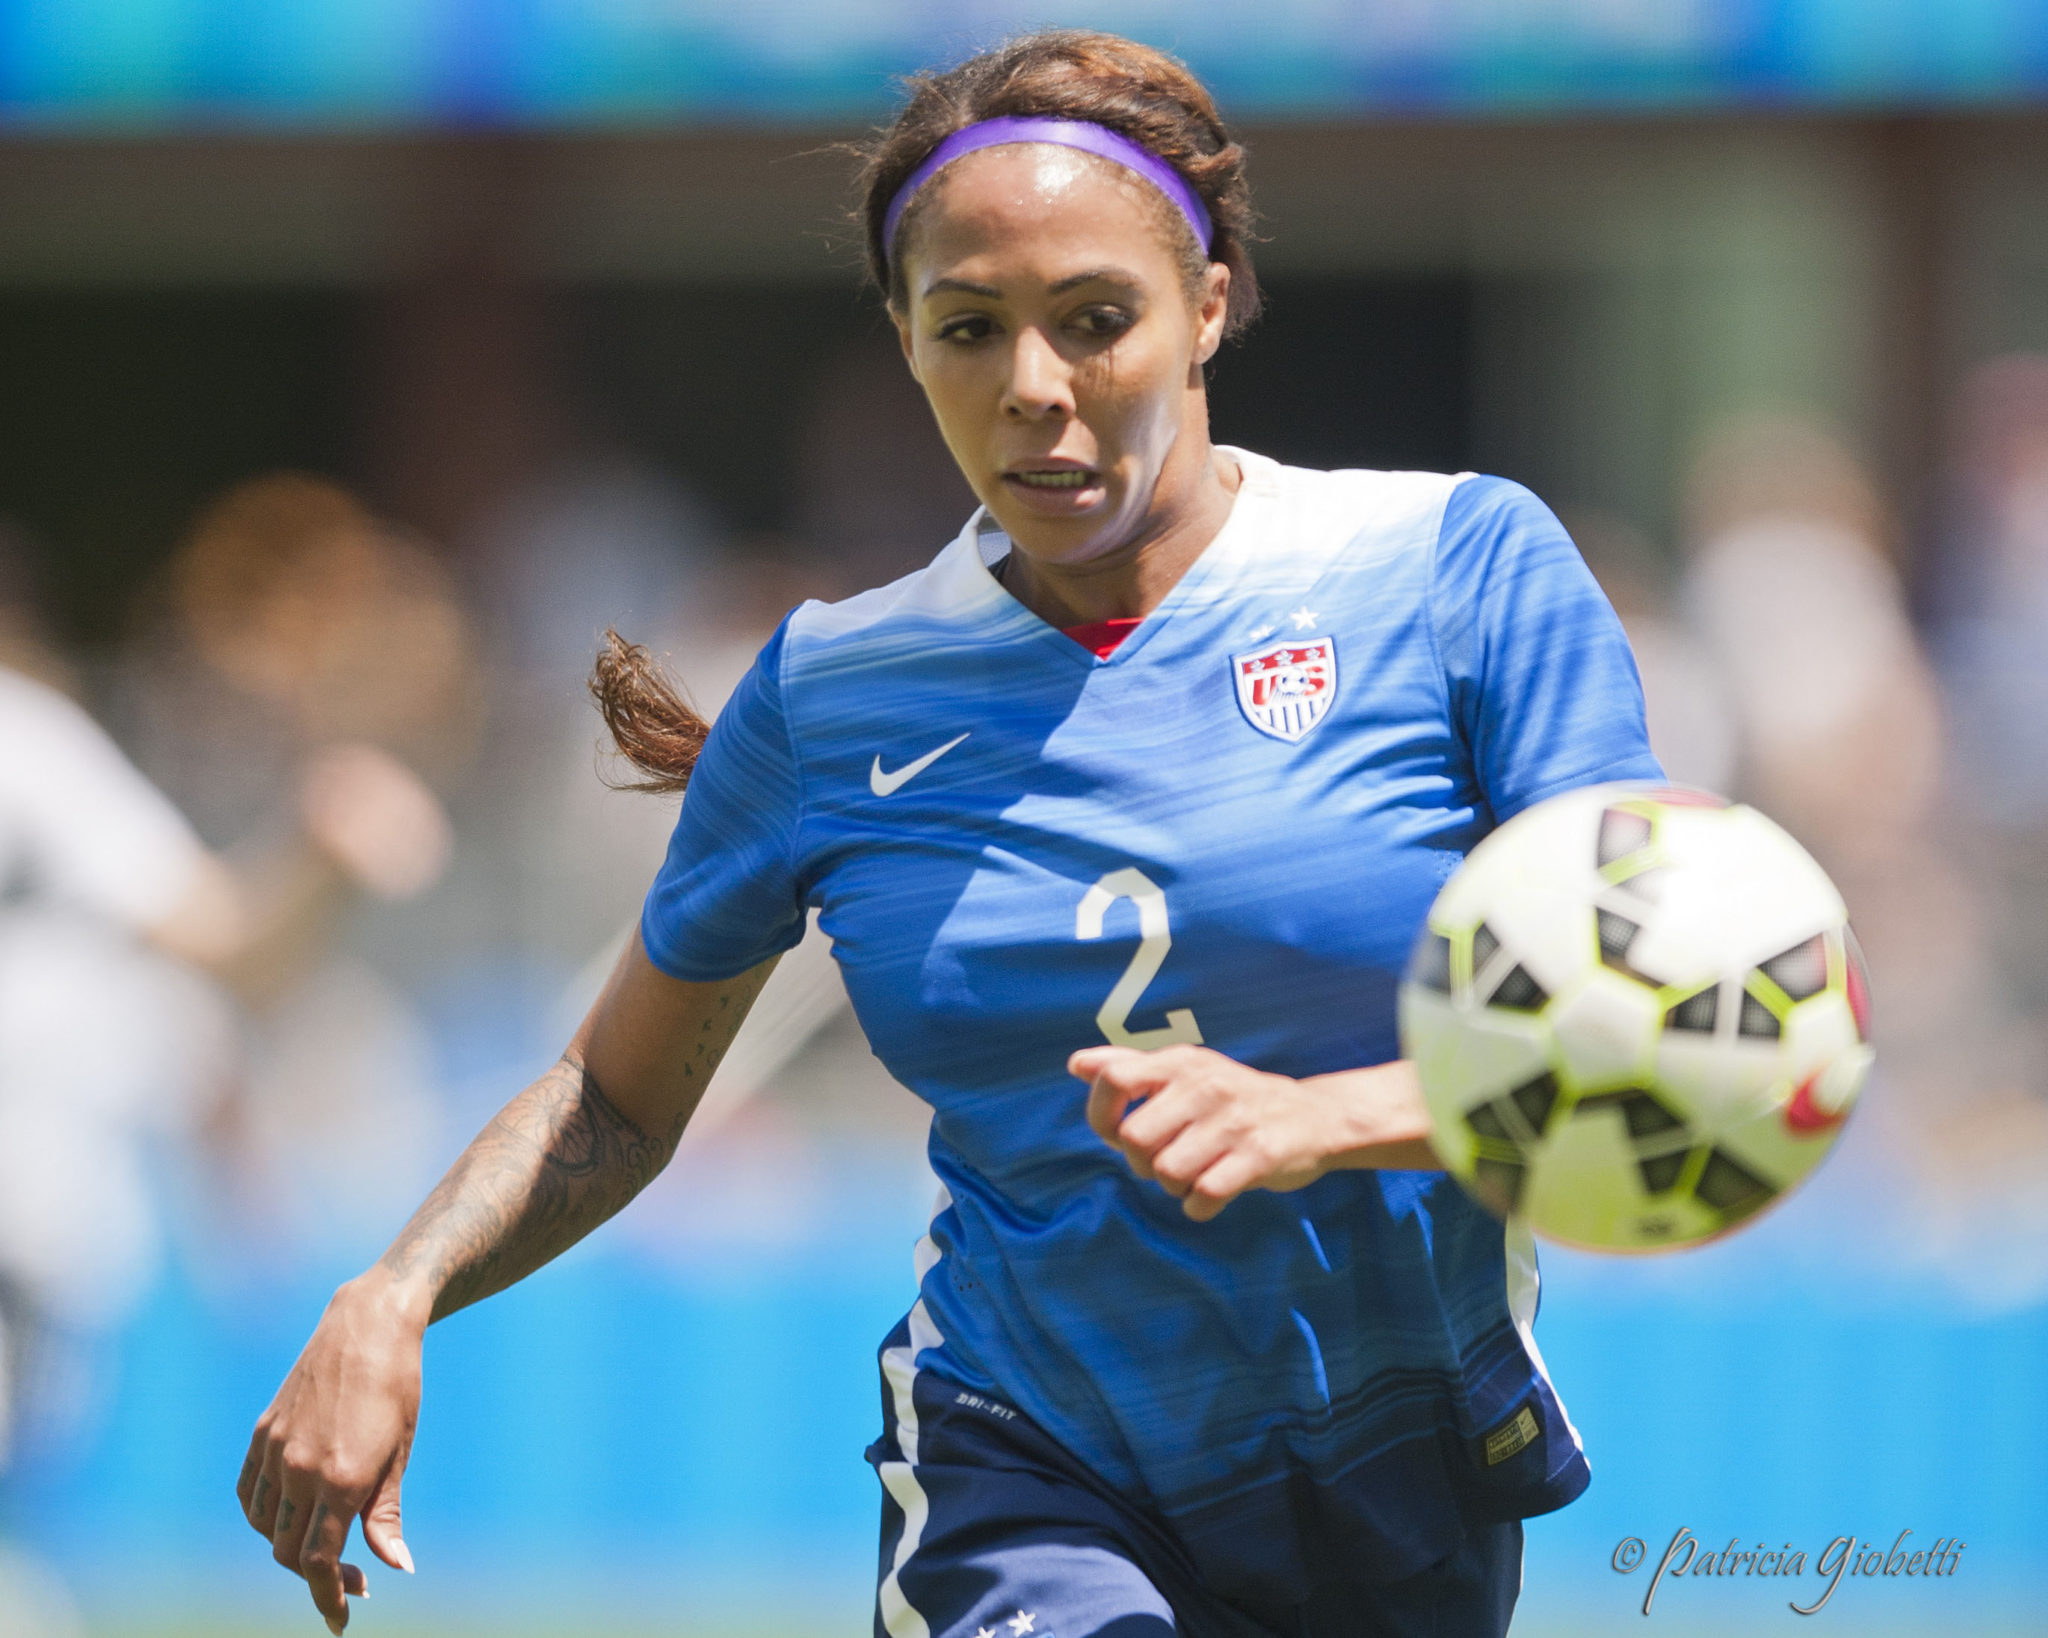 Sydney Leroux will add the Little League Hall of Excellence to her extensive soccer resume. (Photo Copyright Patricia Giobetti for The Equalizer)